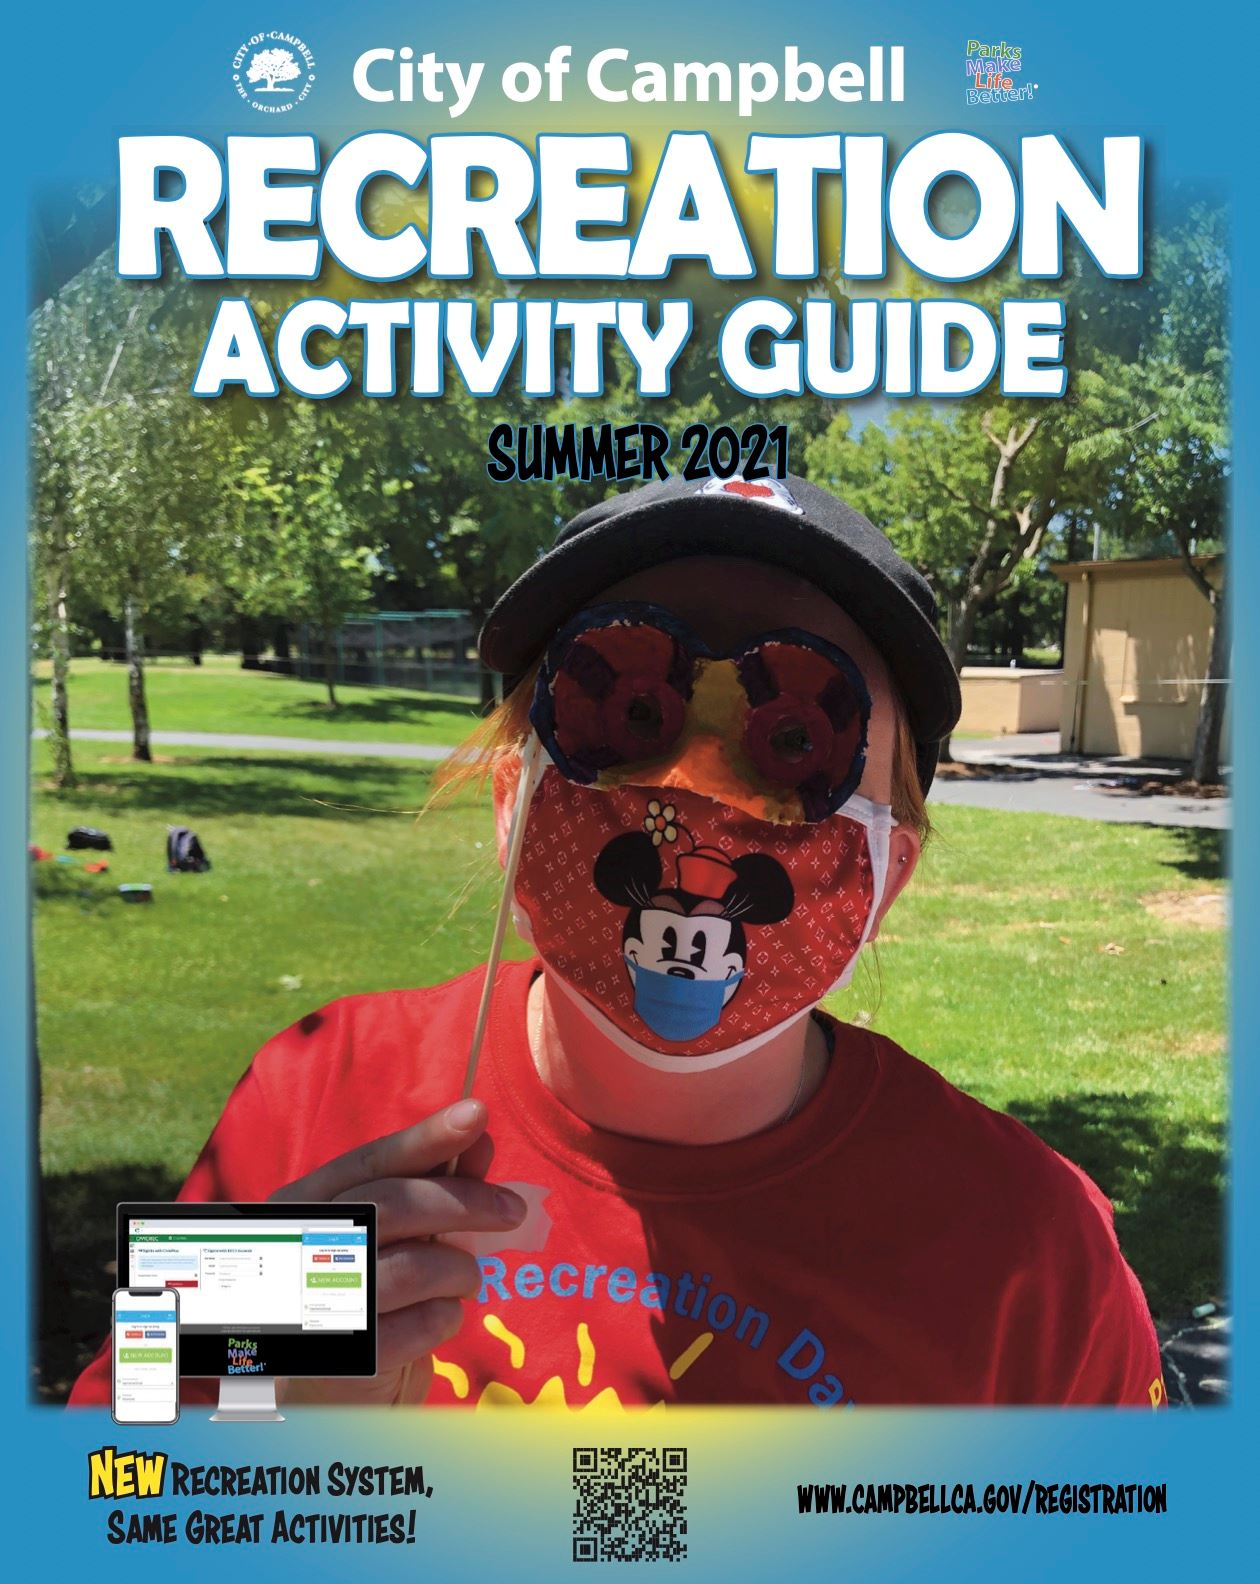 Summer 2021 Activity Guide Cover graphic image